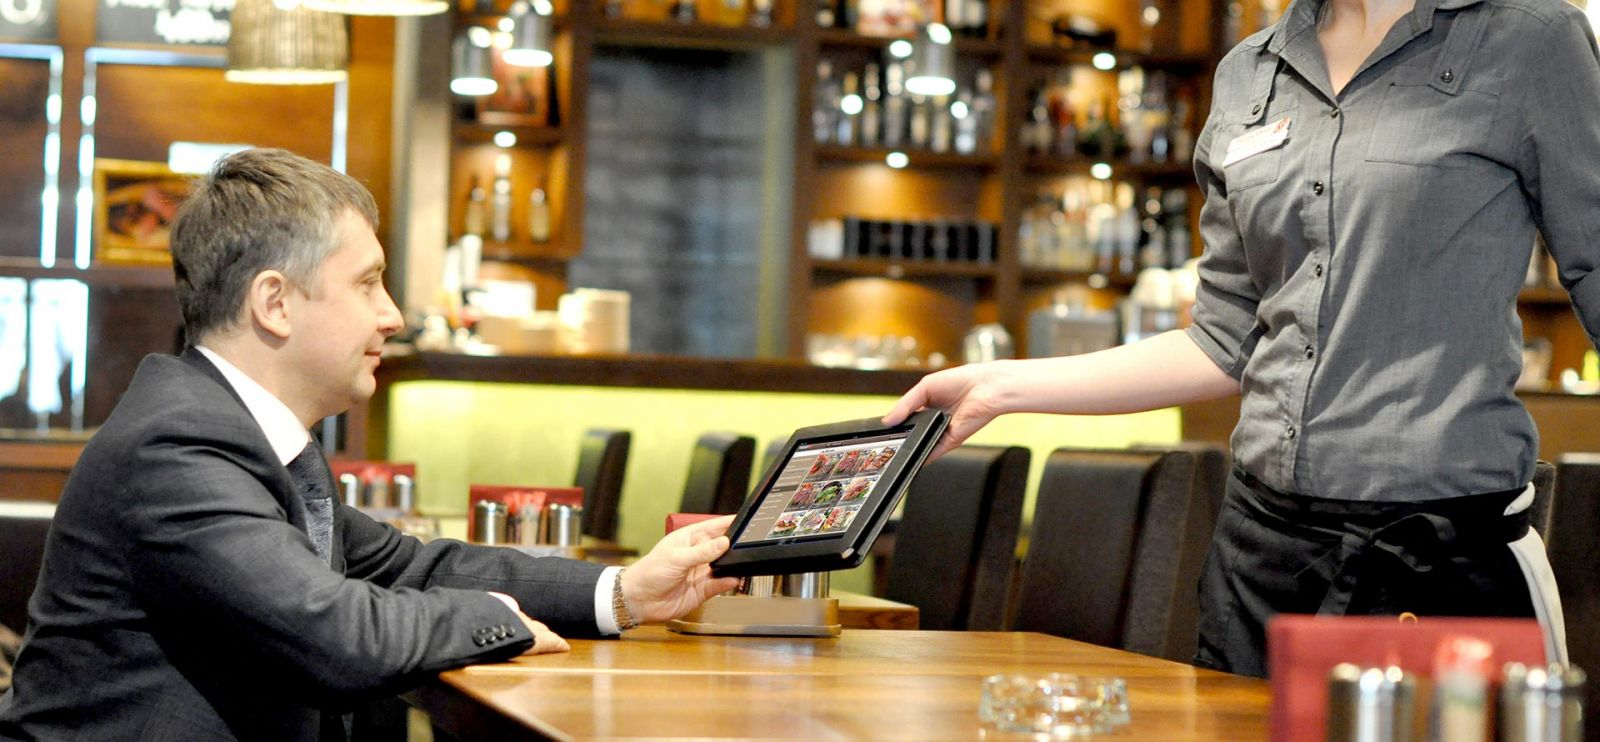 POS System is a Must-Have for any Restaurant. Why?